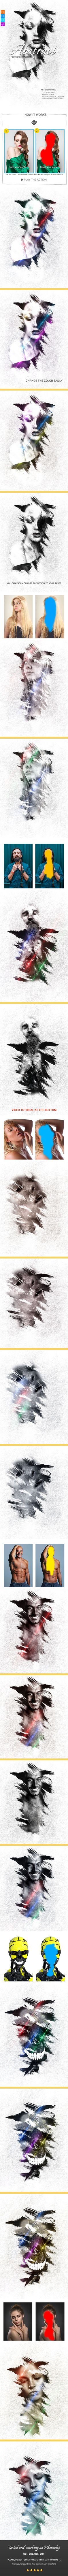 Abstract Photoshop Action #script #ink art • Download ➝ https://graphicriver.net/item/abstract-photoshop-action/21252802?ref=pxcr